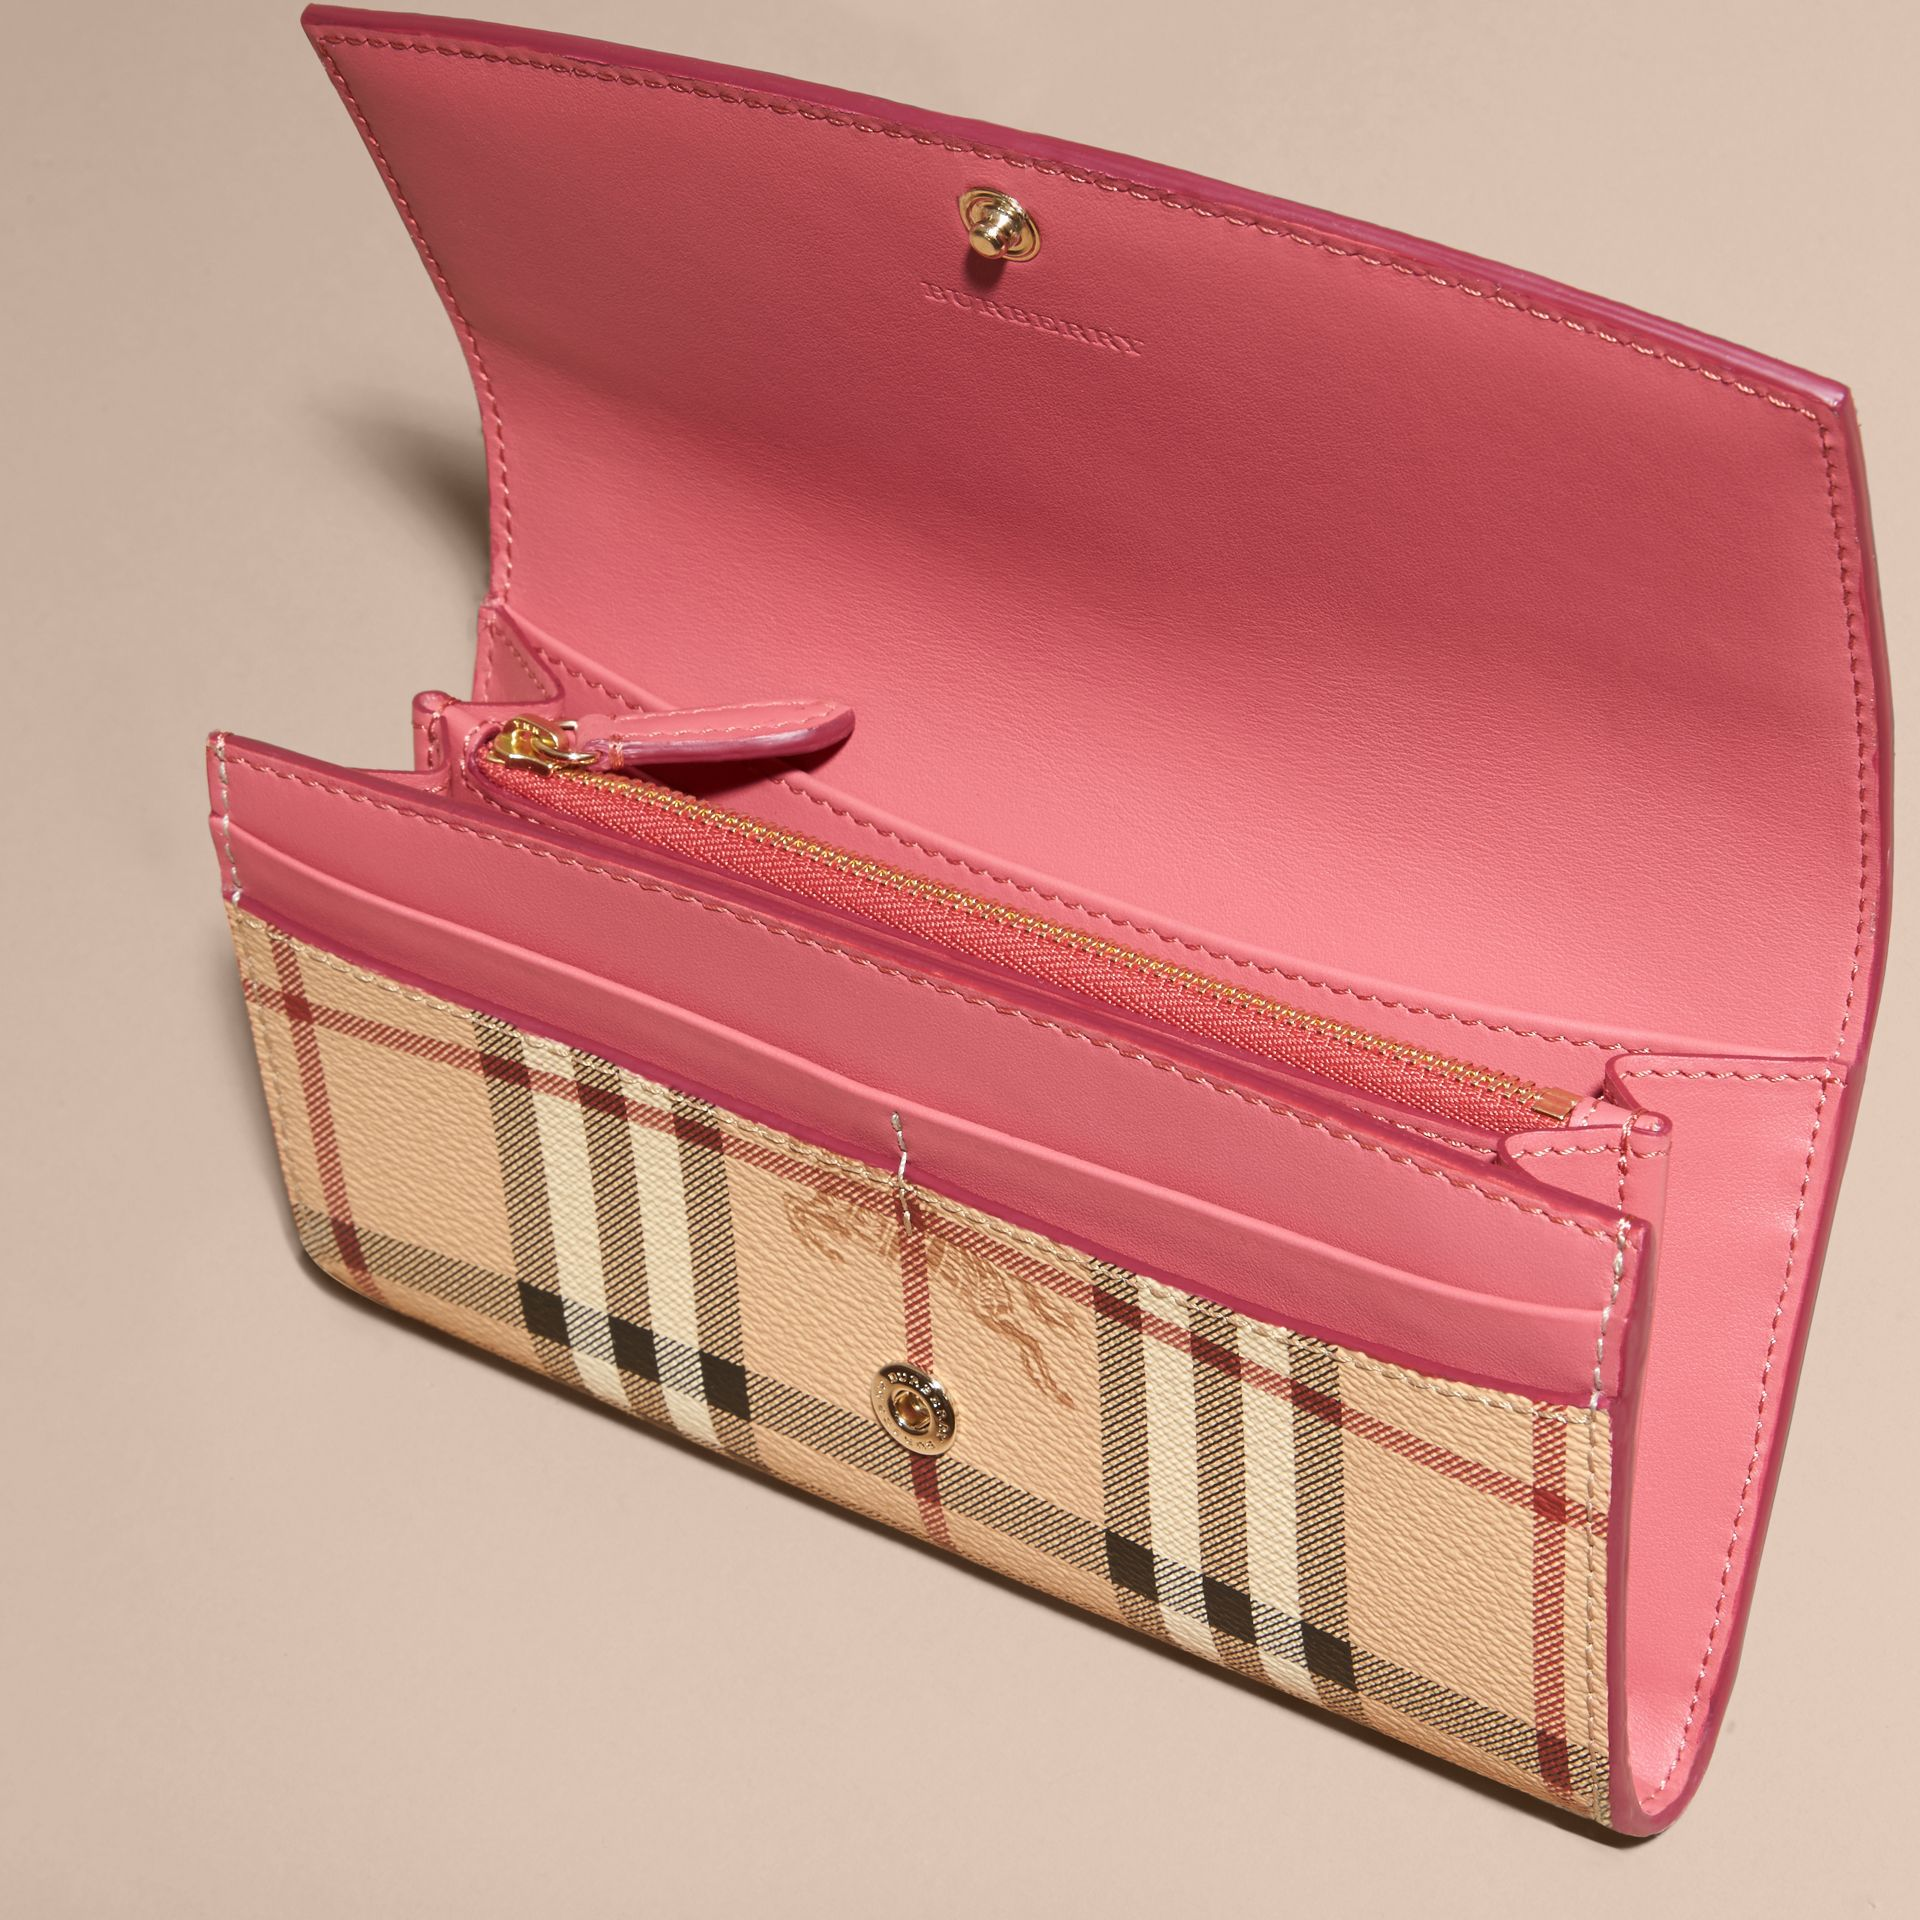 Haymarket Check and Leather Continental Wallet in Plum Pink - Women | Burberry - gallery image 5